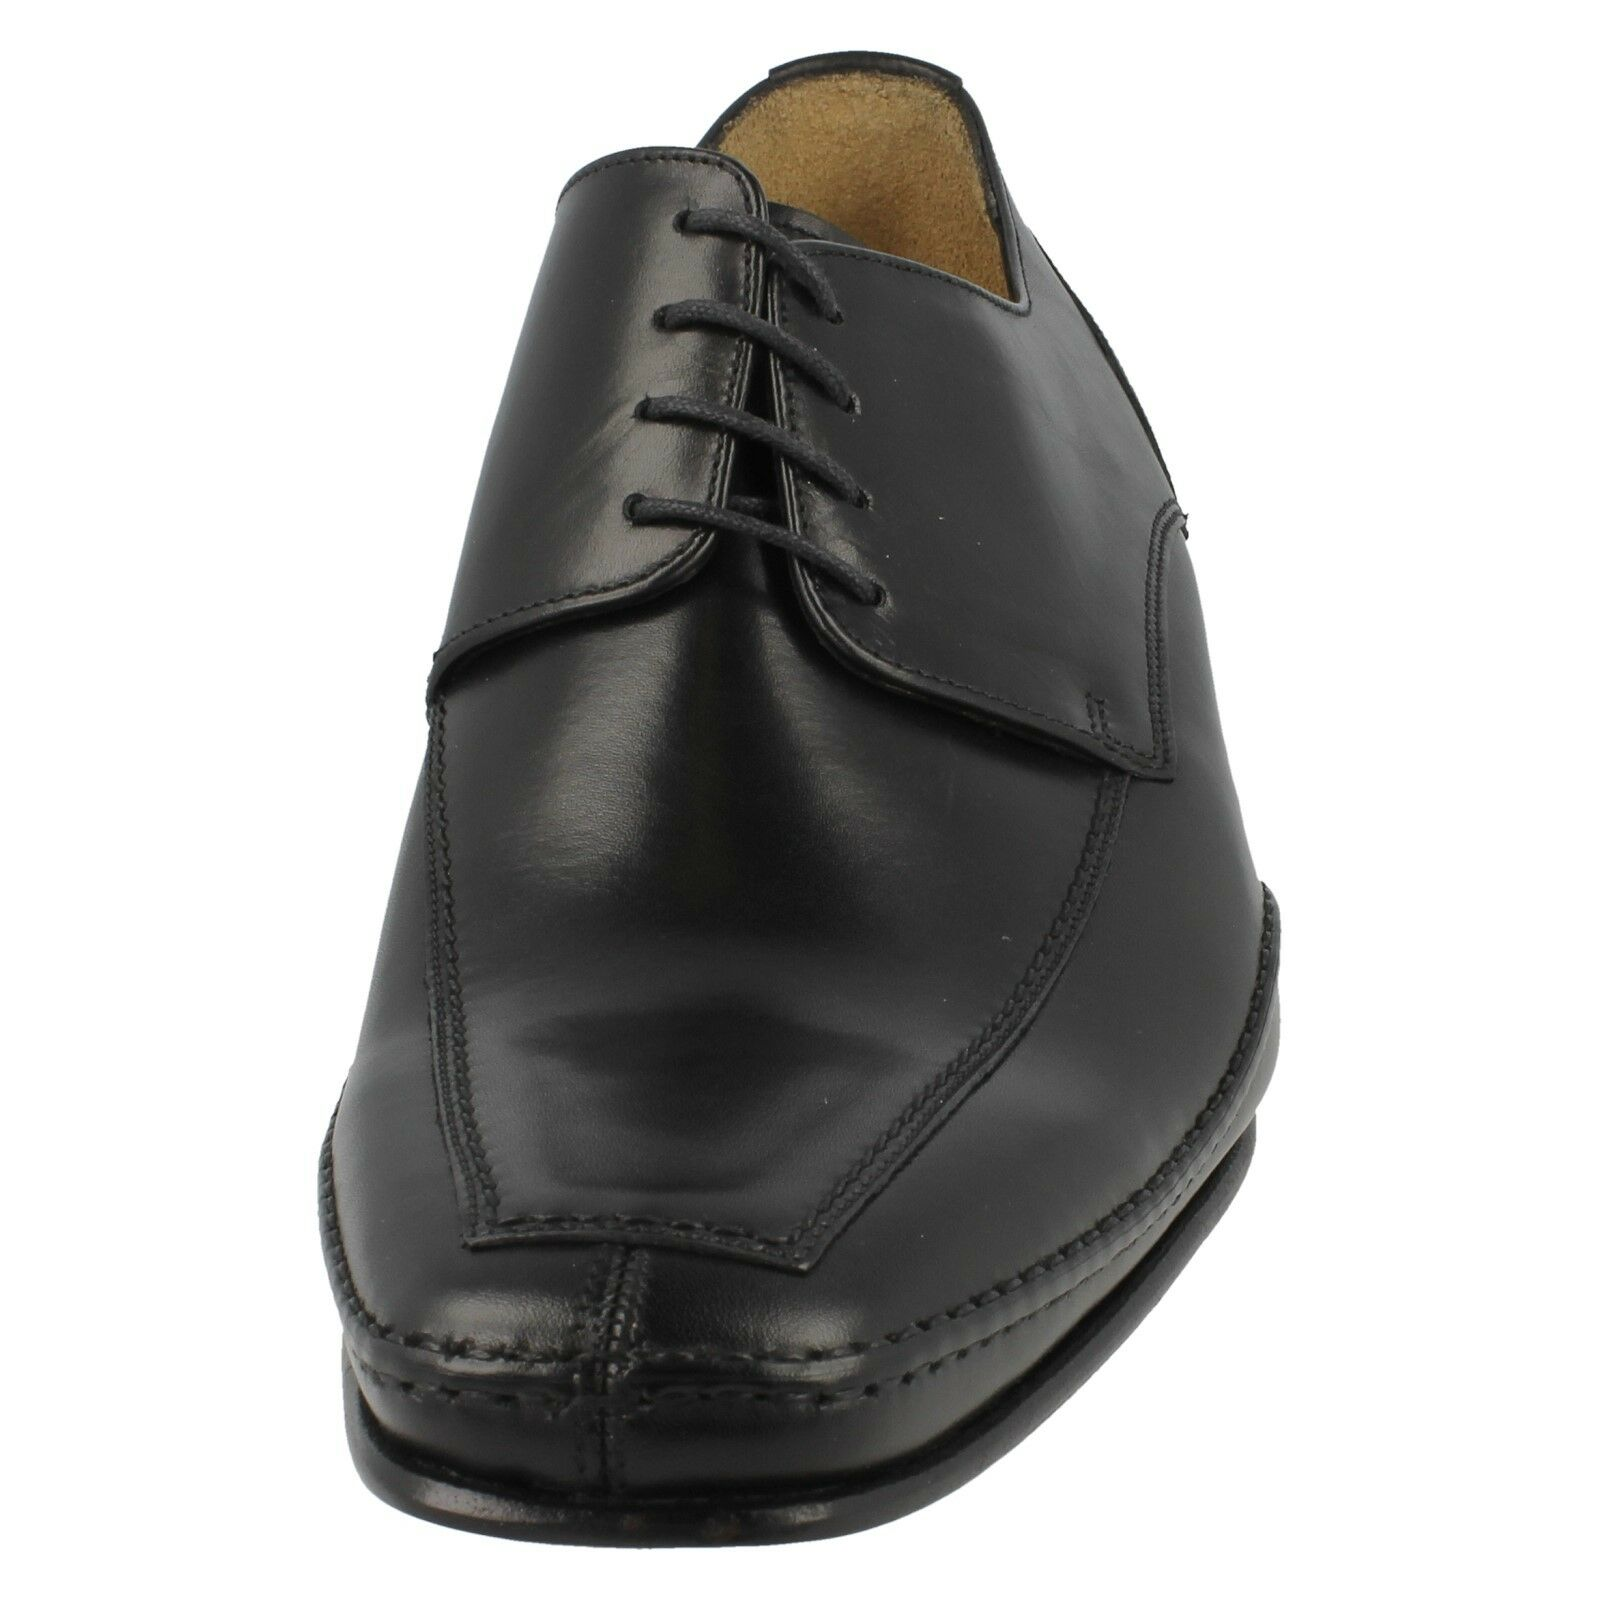 HURST MENS LOAKE LACE UP SMART LEATHER CLASSIC CLASSIC CLASSIC FORMAL OFFICE schuhe Größe 6 - 12 0aaa81